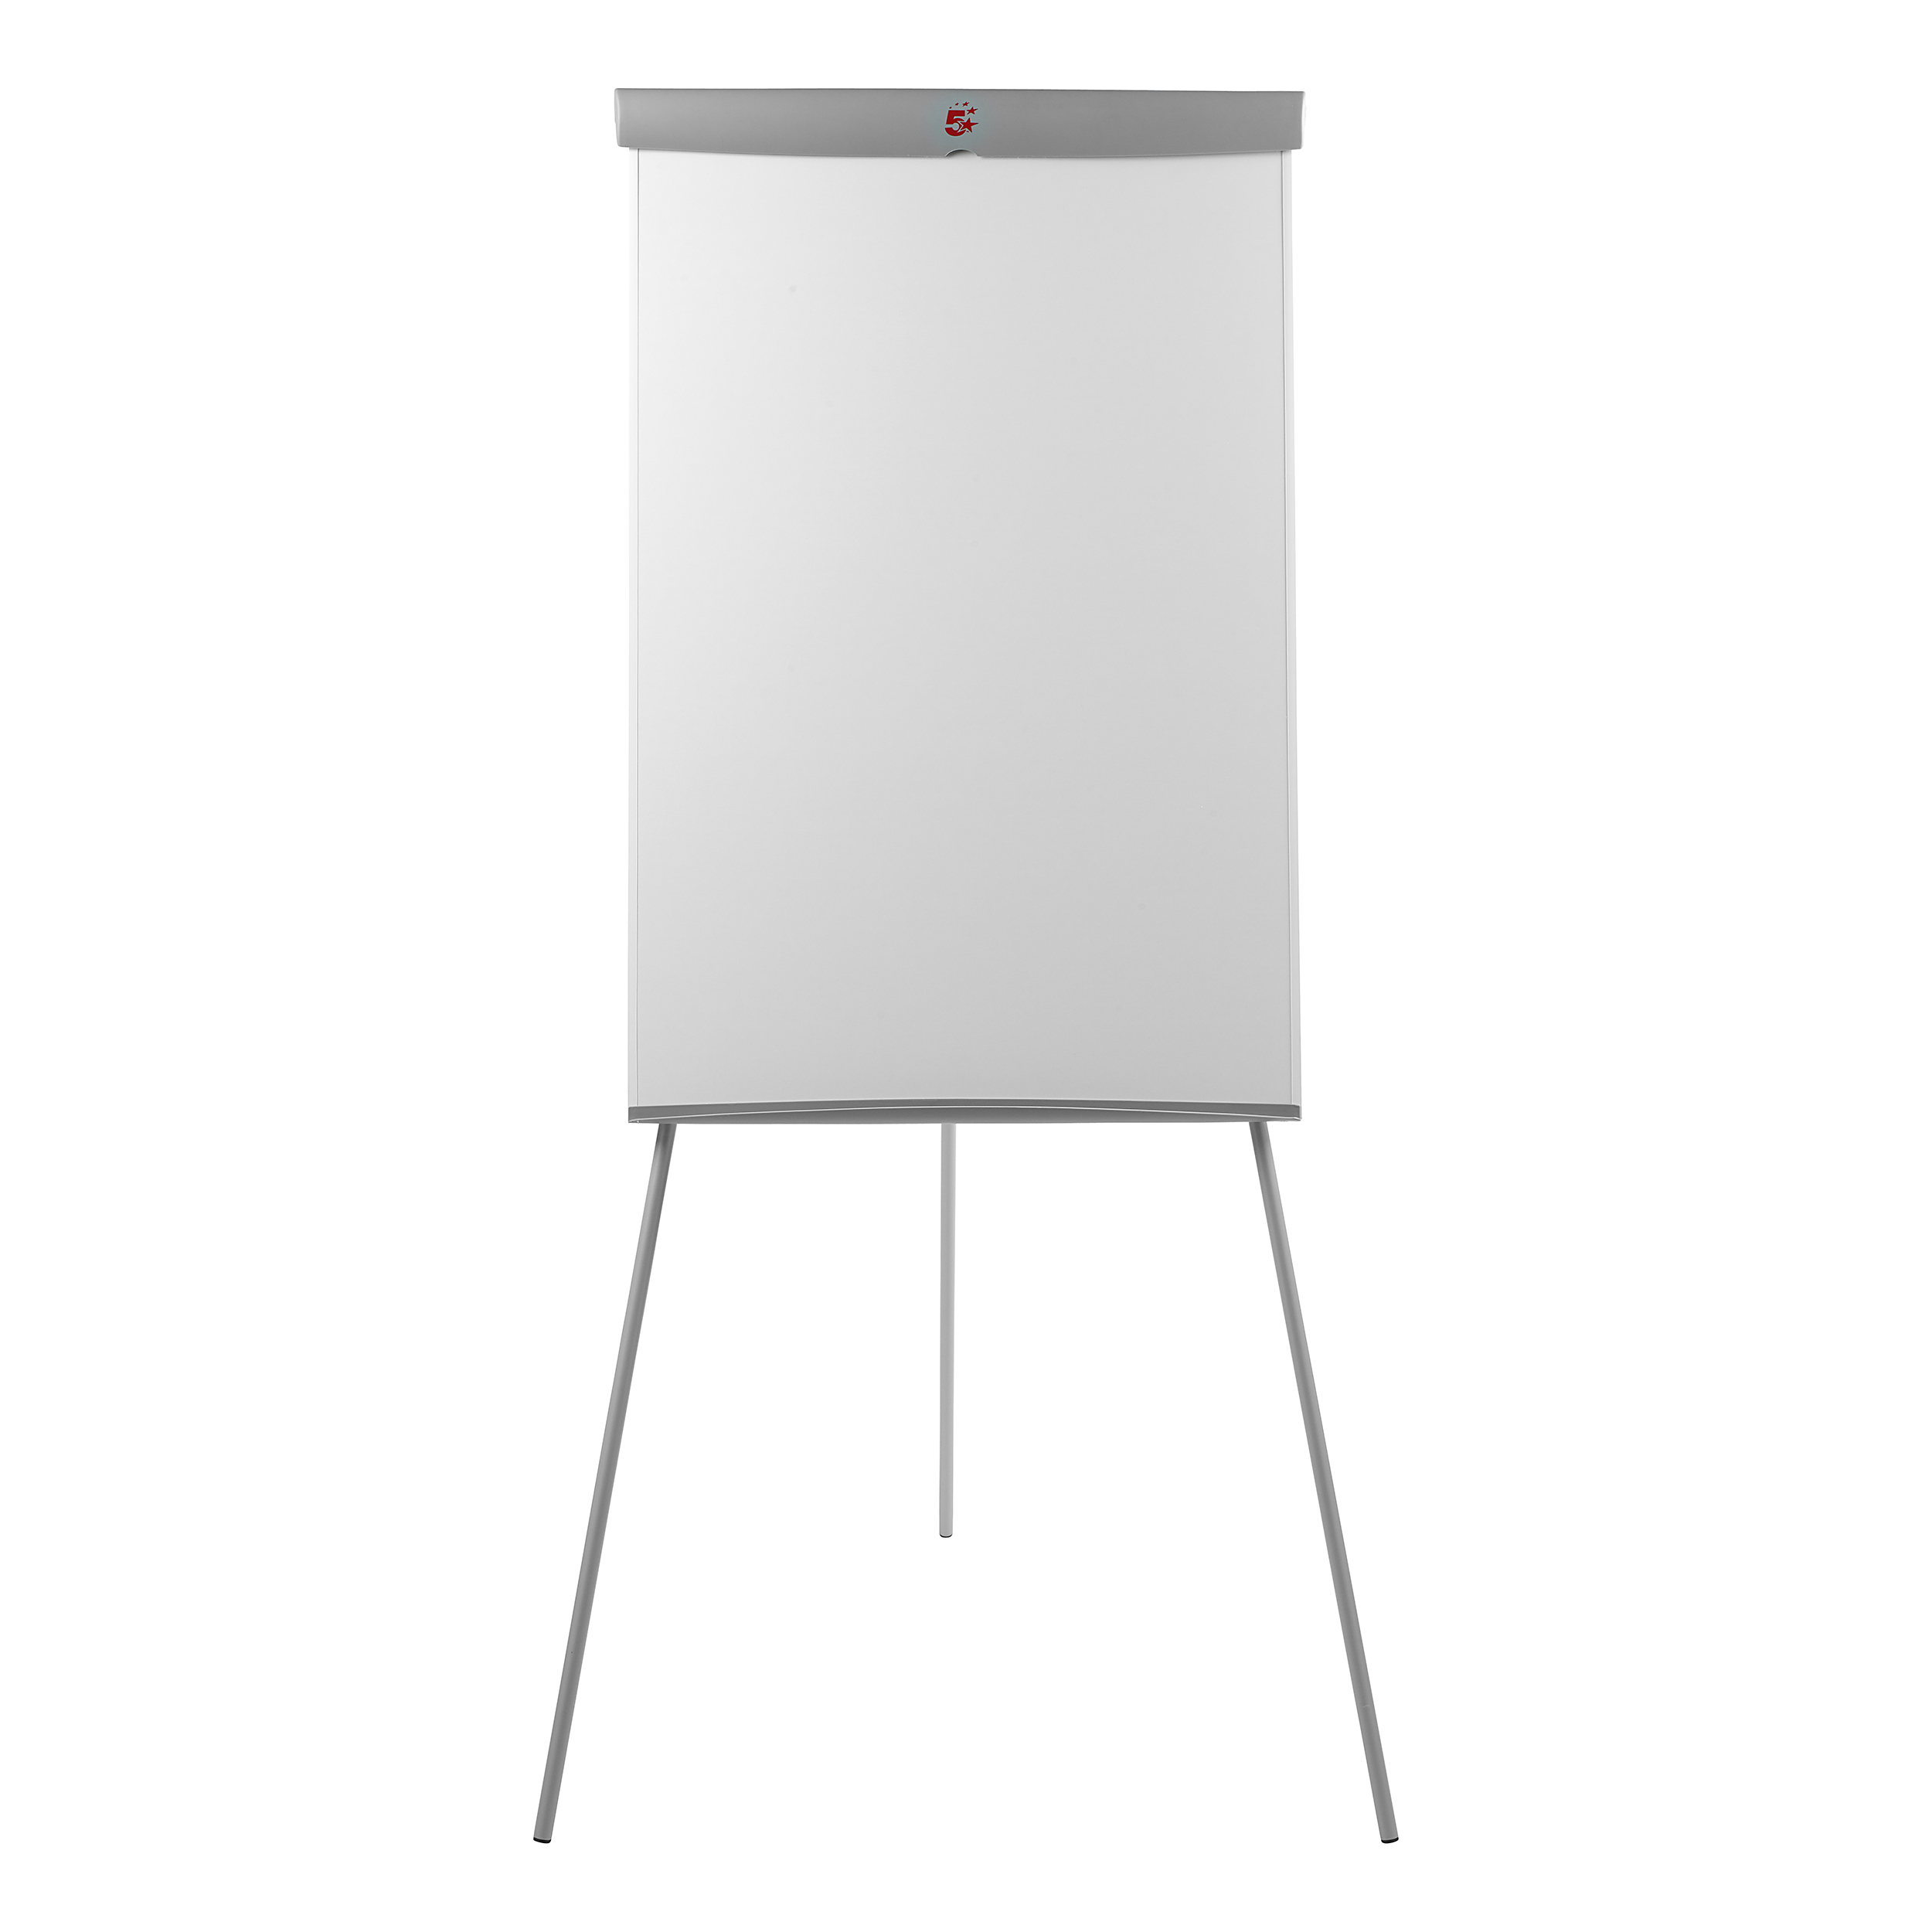 Easels 5 Star Office Flipchart Easel Telescopic Legs with W670xH990mm Board W700xD82xH1900mm Grey Trim